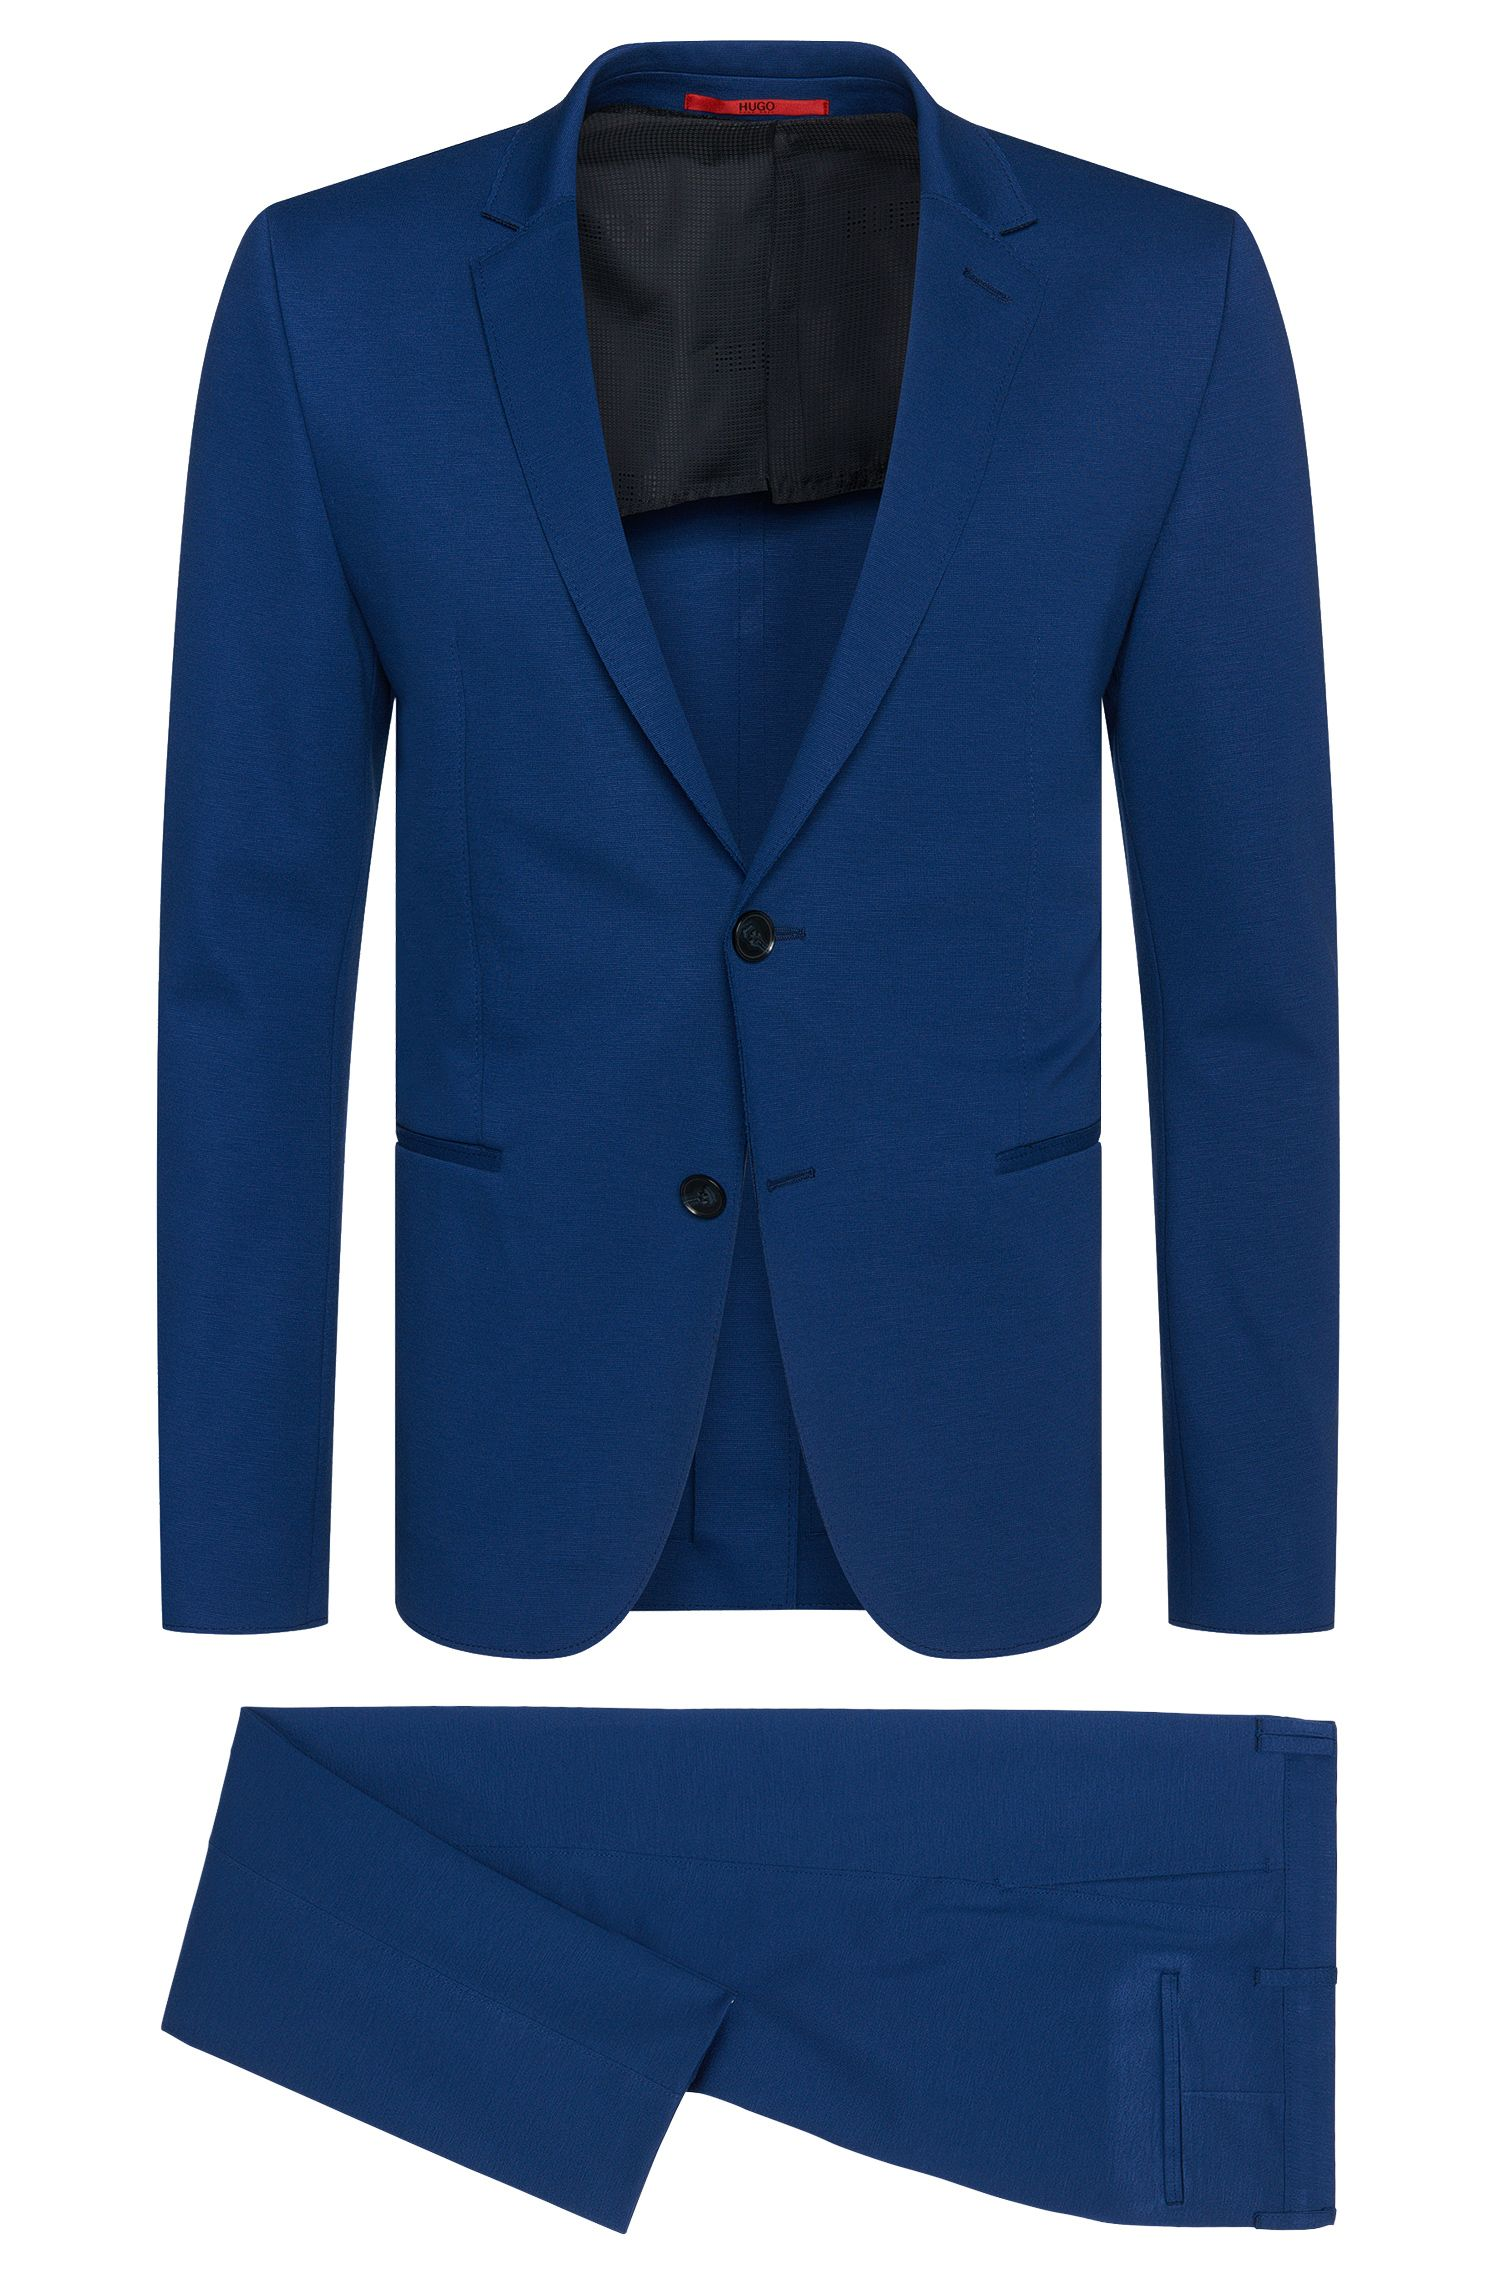 Viscose Blend Jersey Suit, Slim Fit | Arsey/Hyns